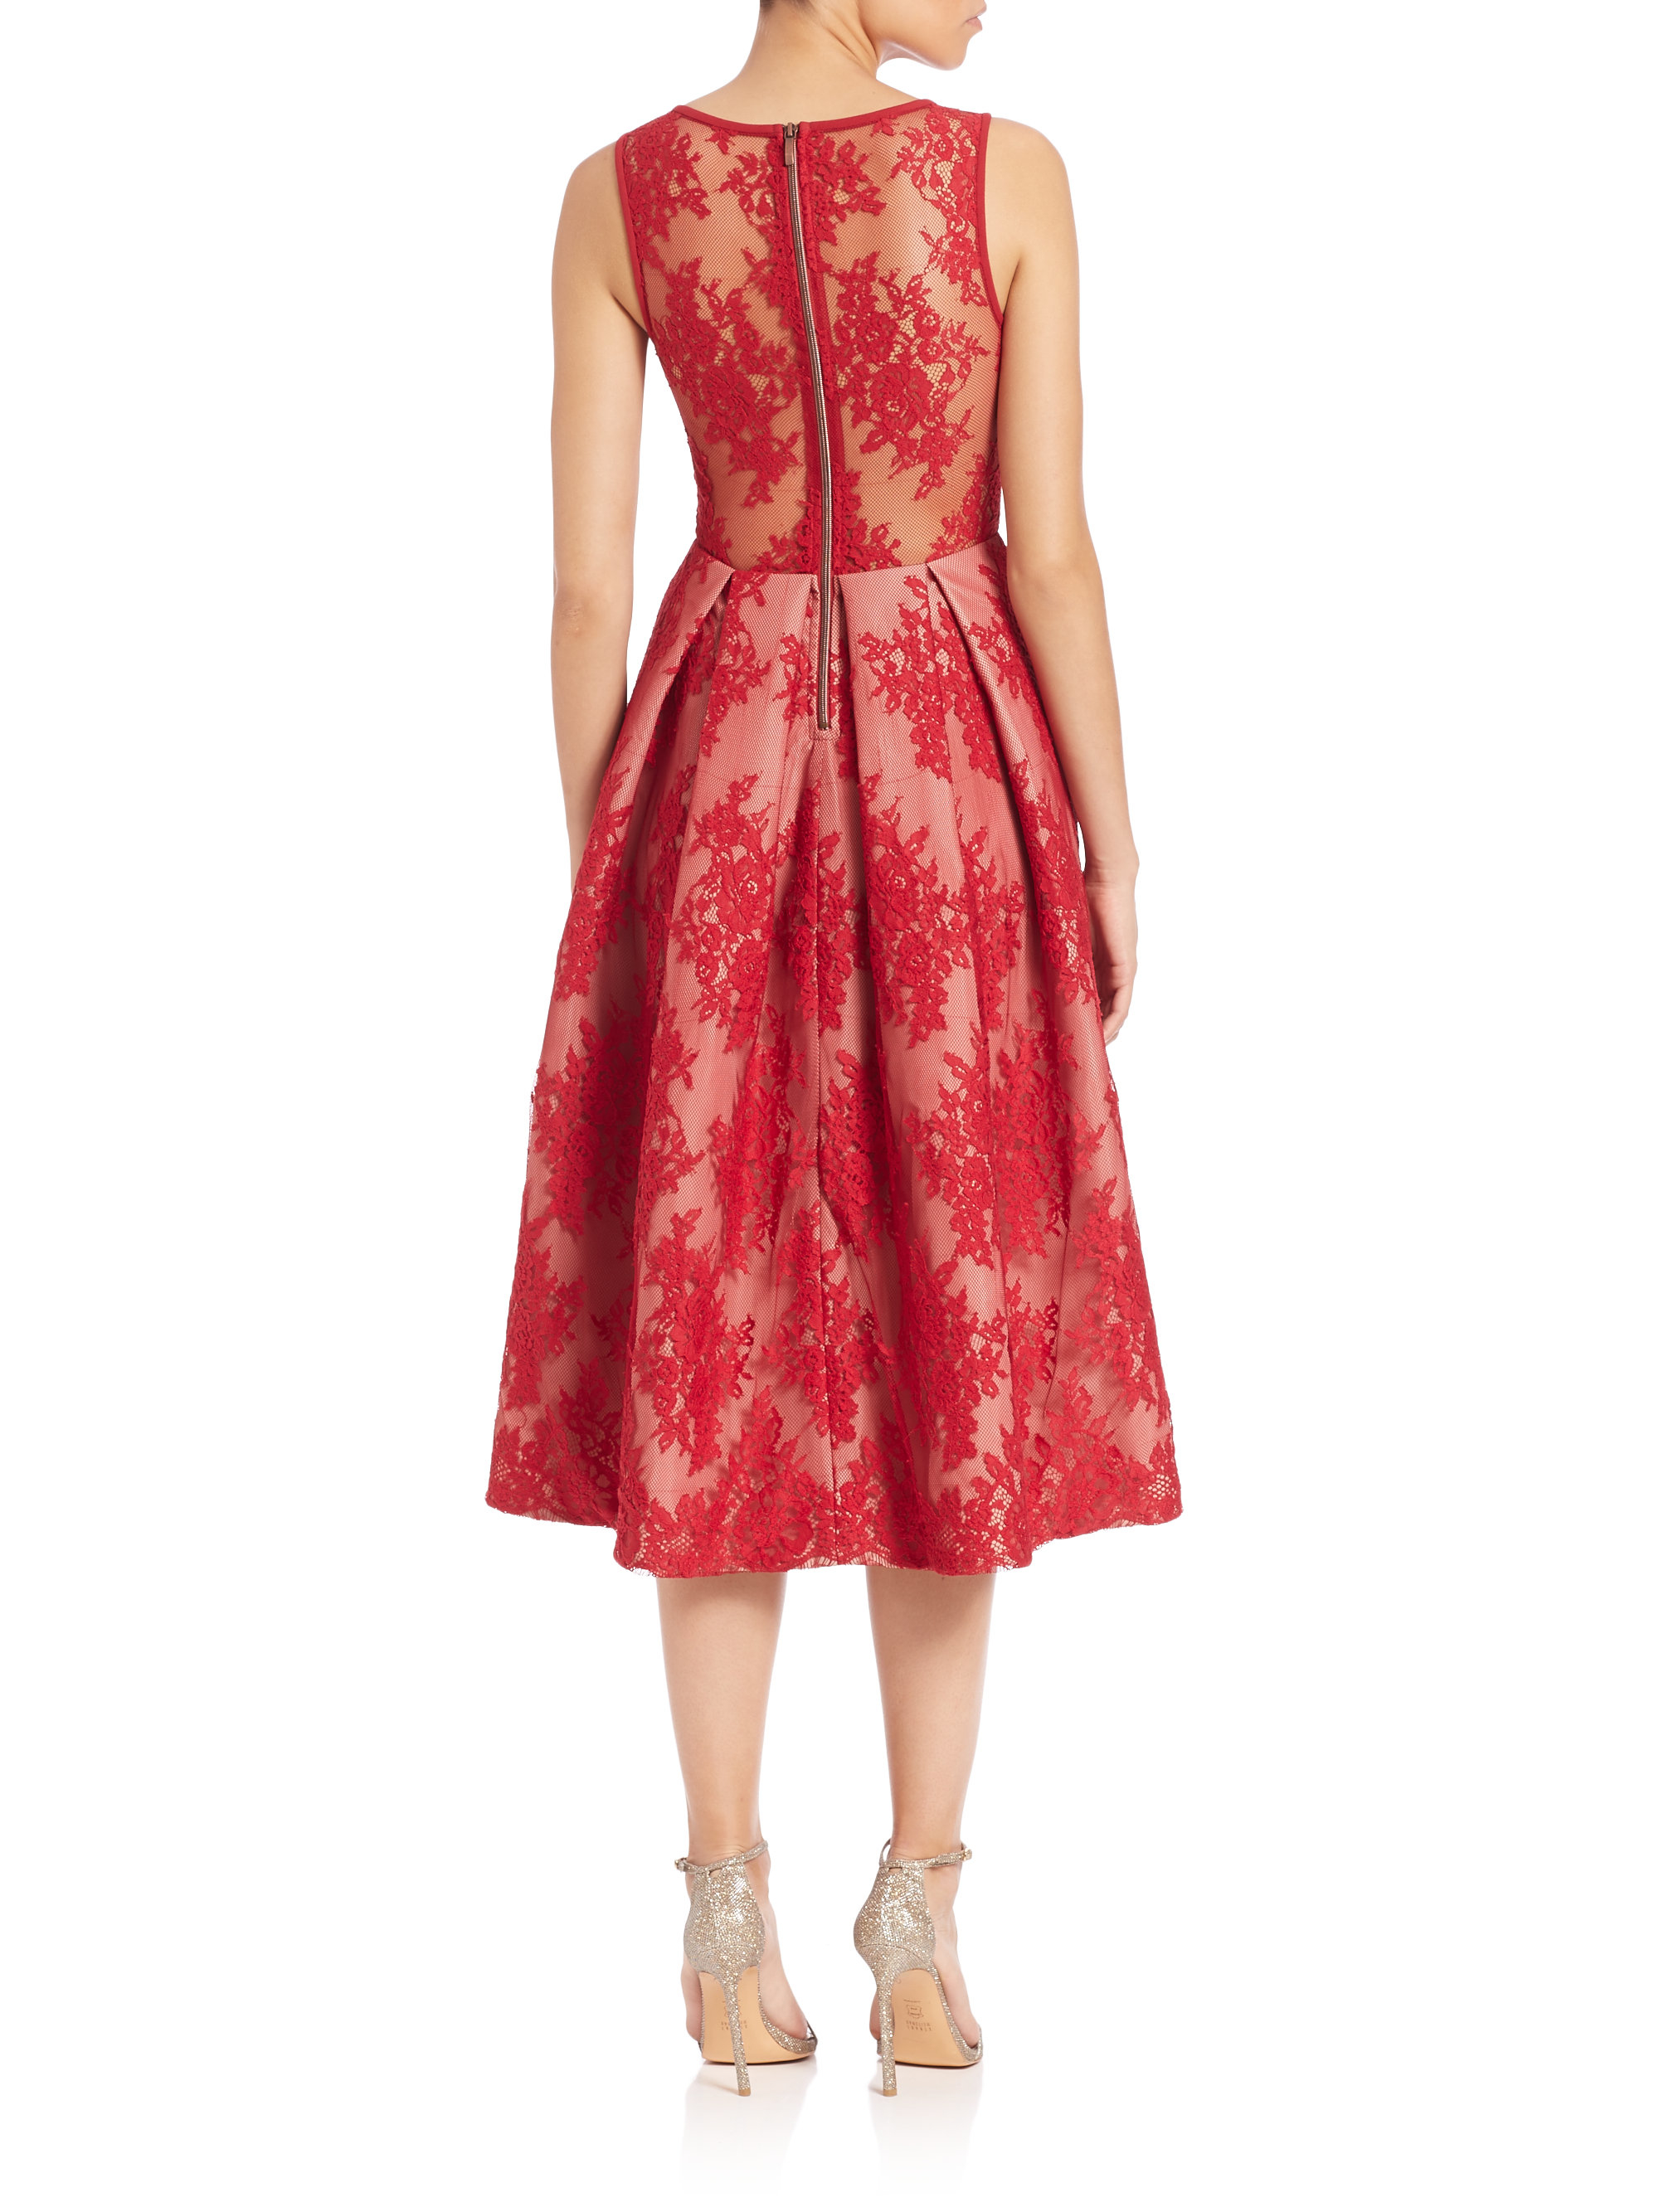 Lyst Black Halo Eliason Chantilly Lace Cocktail Dress In Red